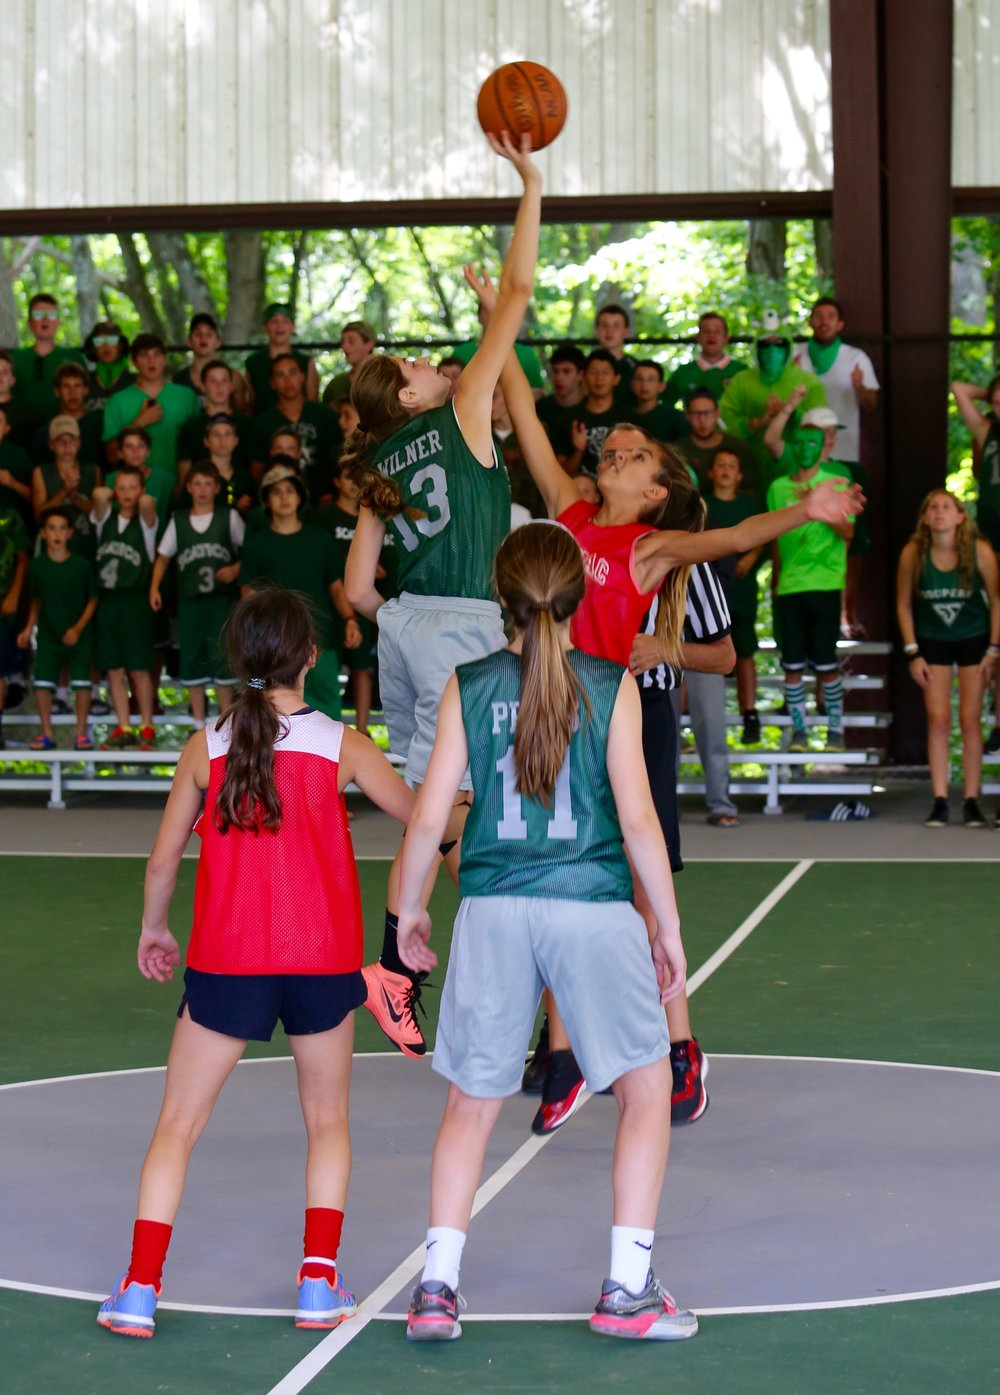 Opening tip of the girls' Nat Holman Basketball Tournament (Kasey showing some hops).